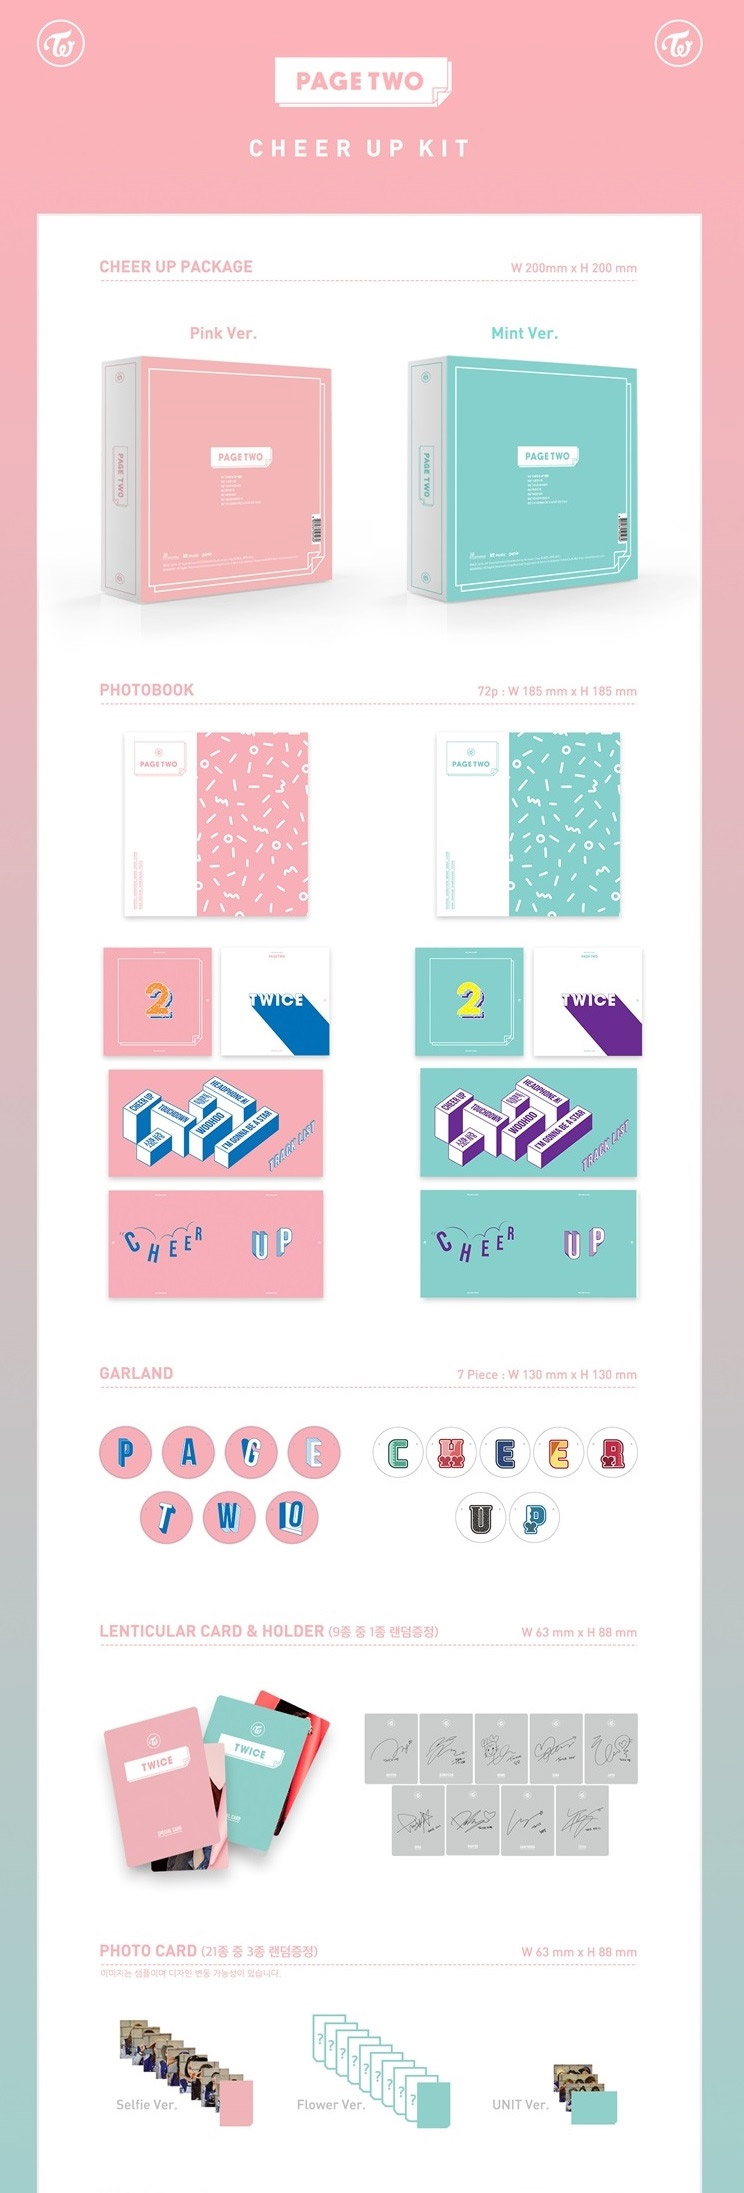 [MINT Version] TWICE 2nd Mini Album - PAGE TWO CD